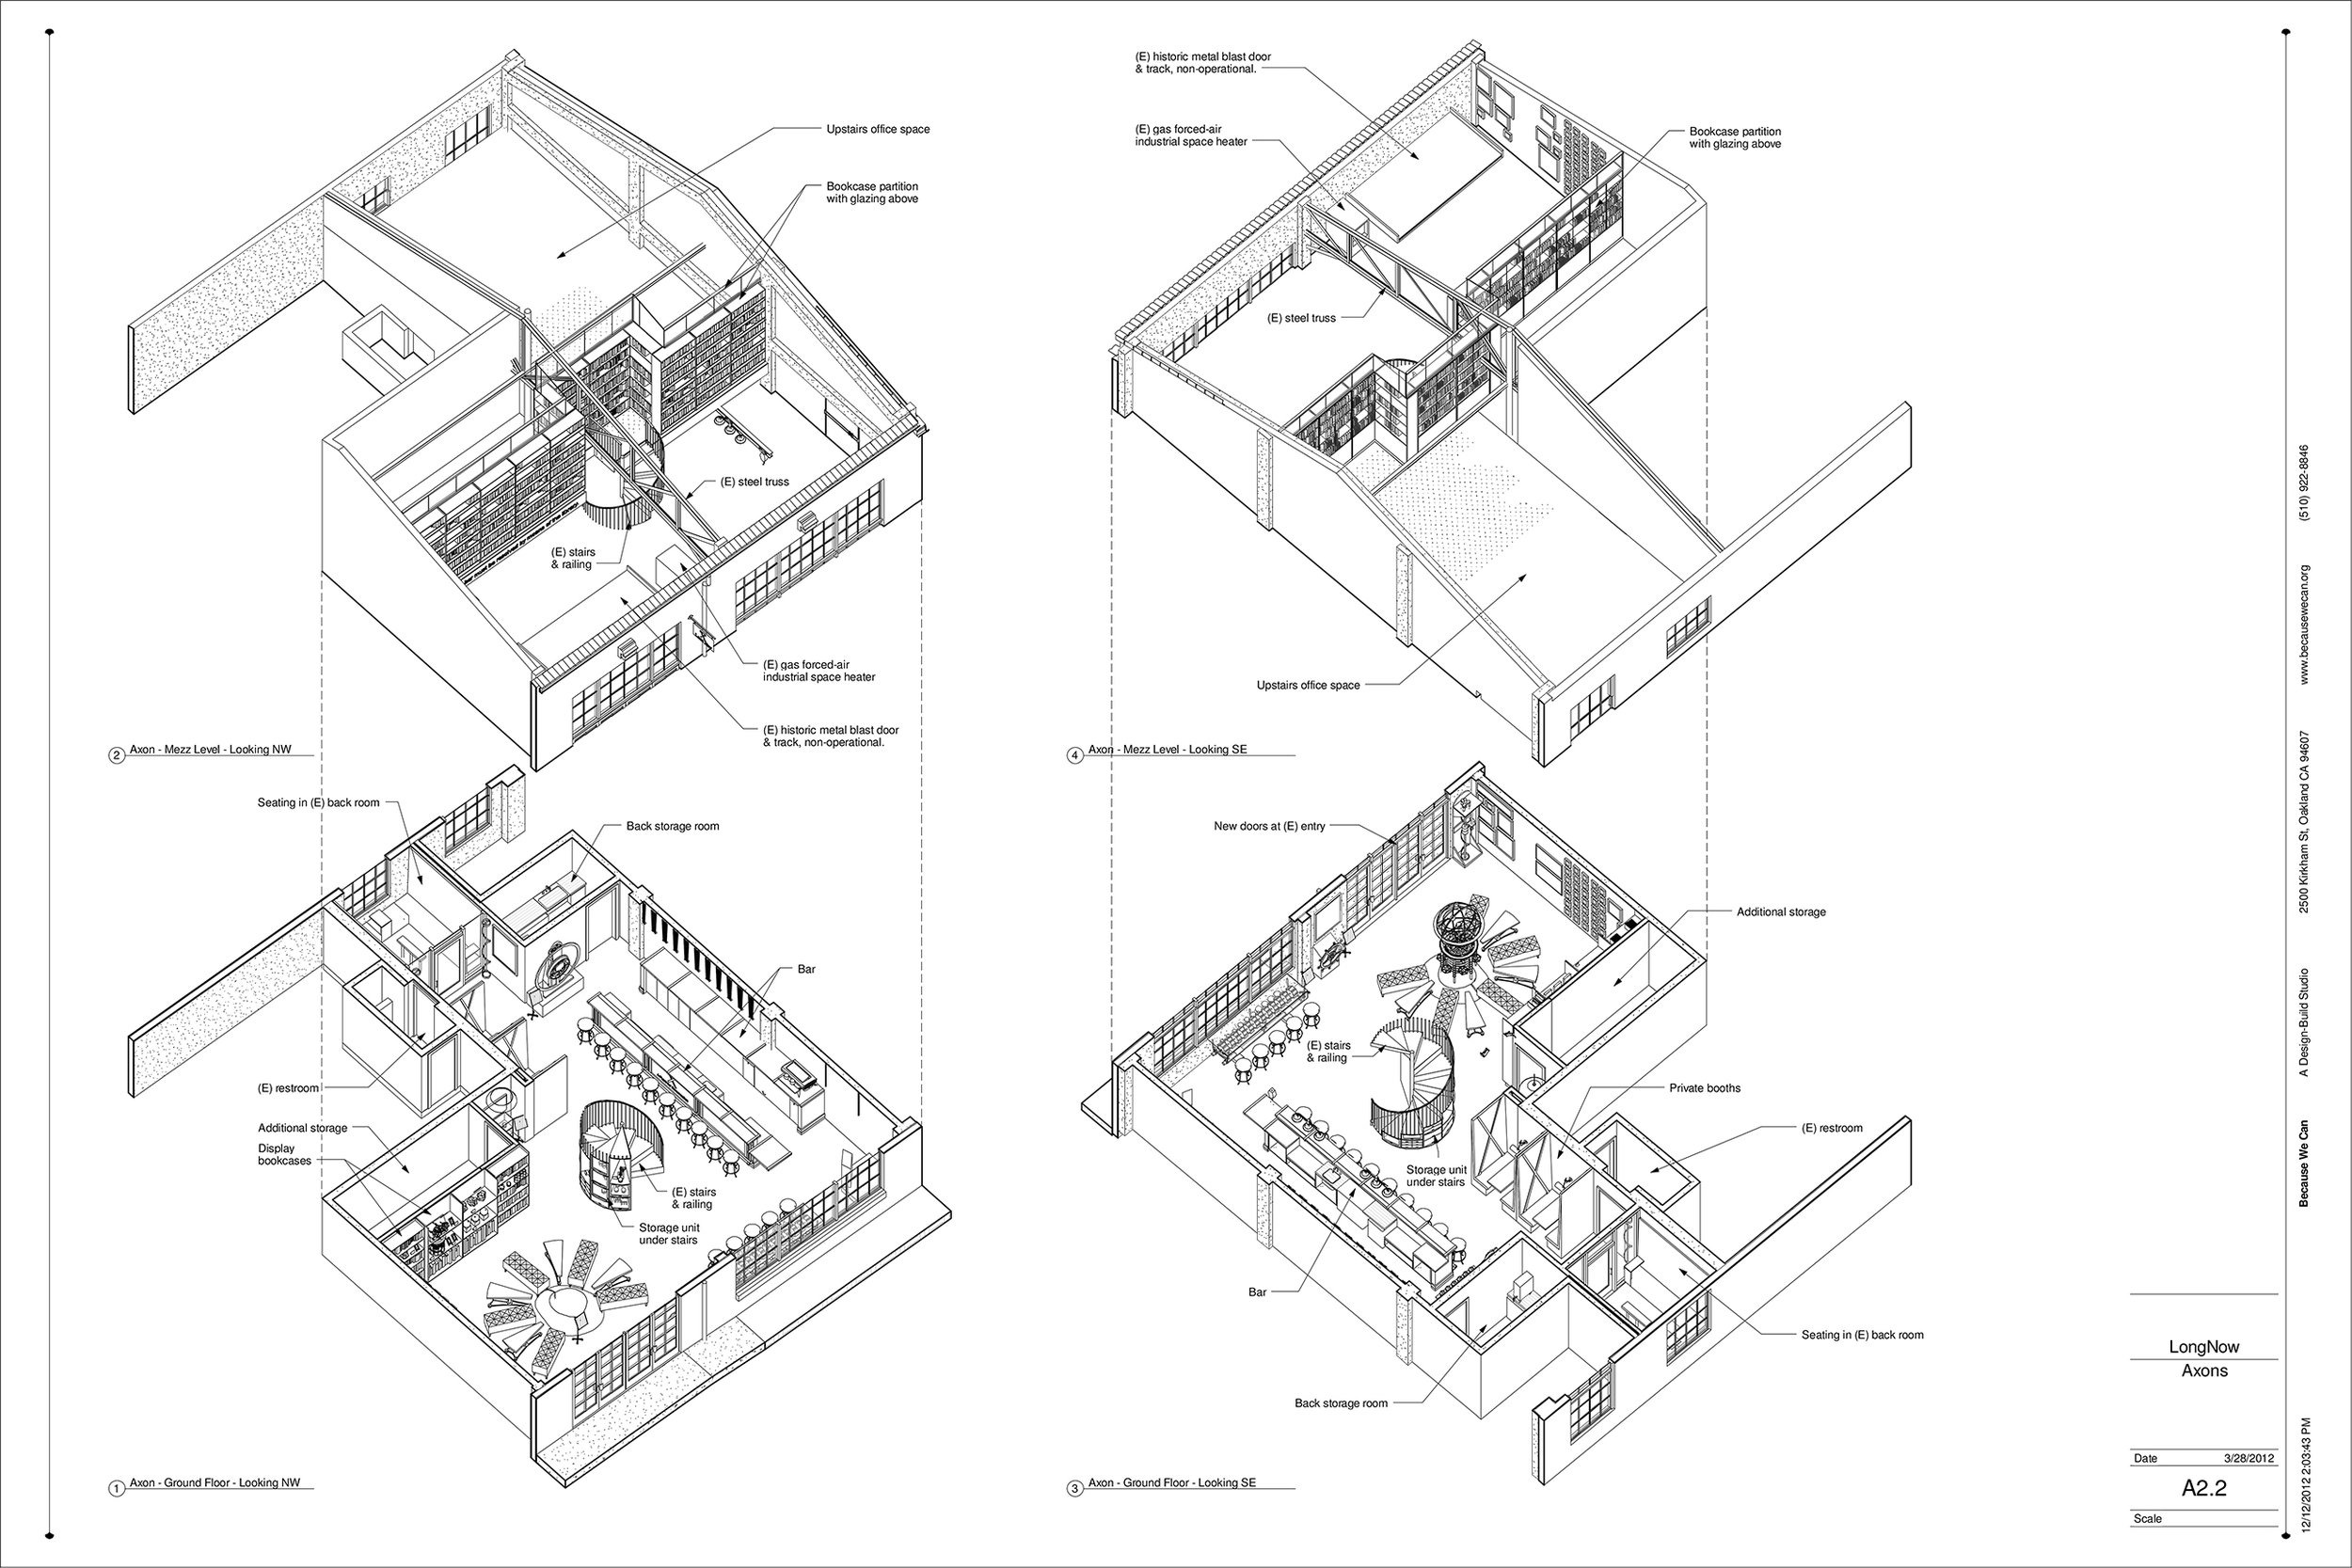 From our Architectural set for construction, these plans show the two floor construction of the interior and how all the elements will be arranged.